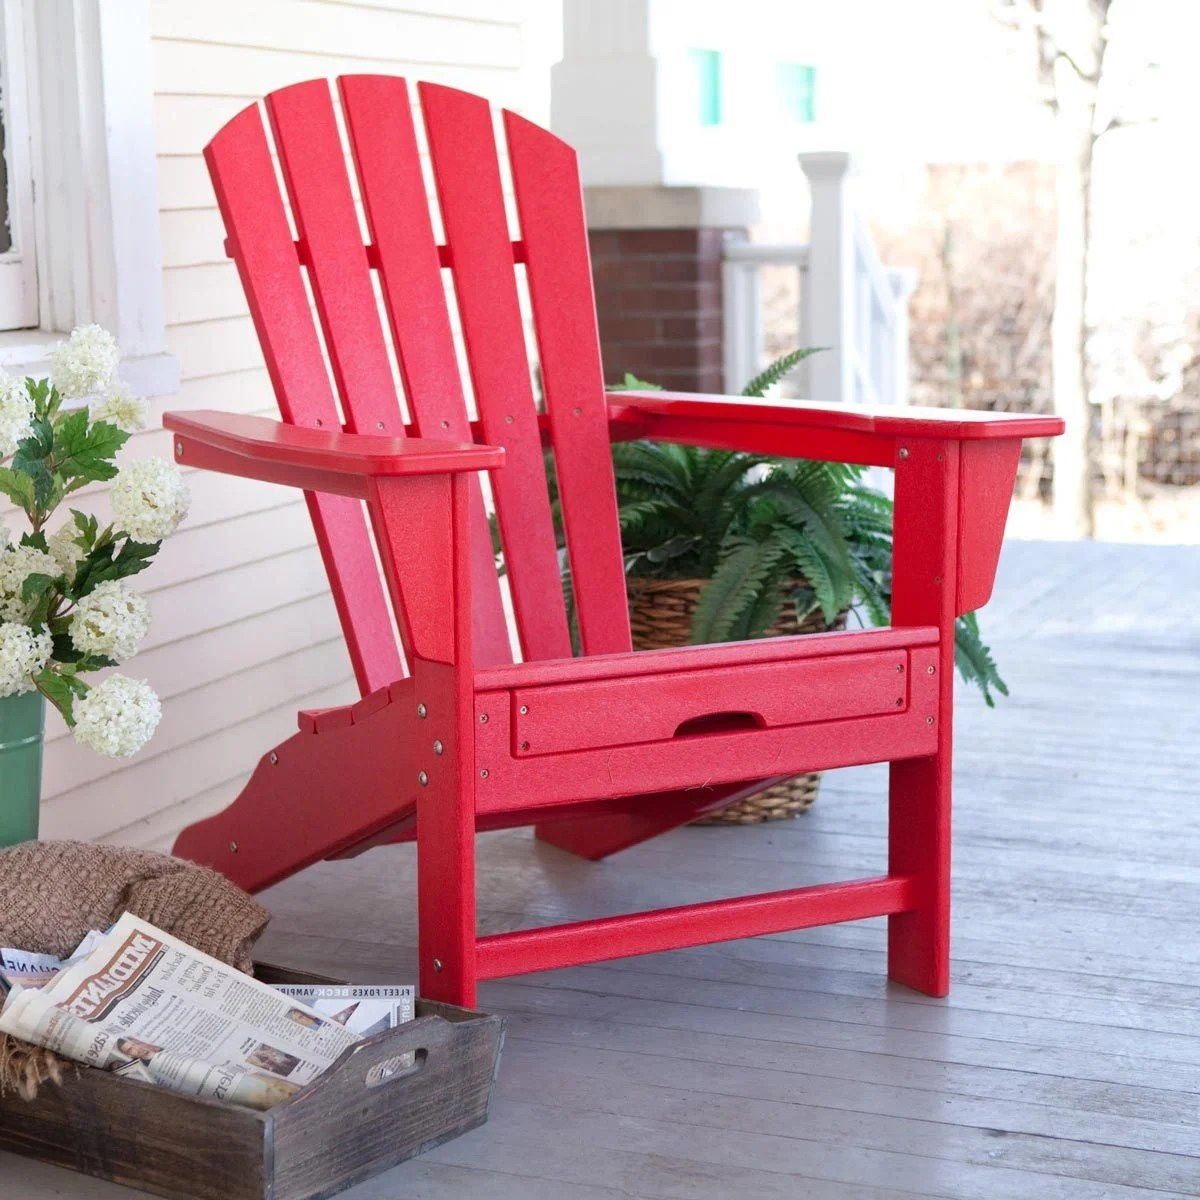 Red Adirondack Chairs 15 Adirondack Chairs You Have To See To Believe Family